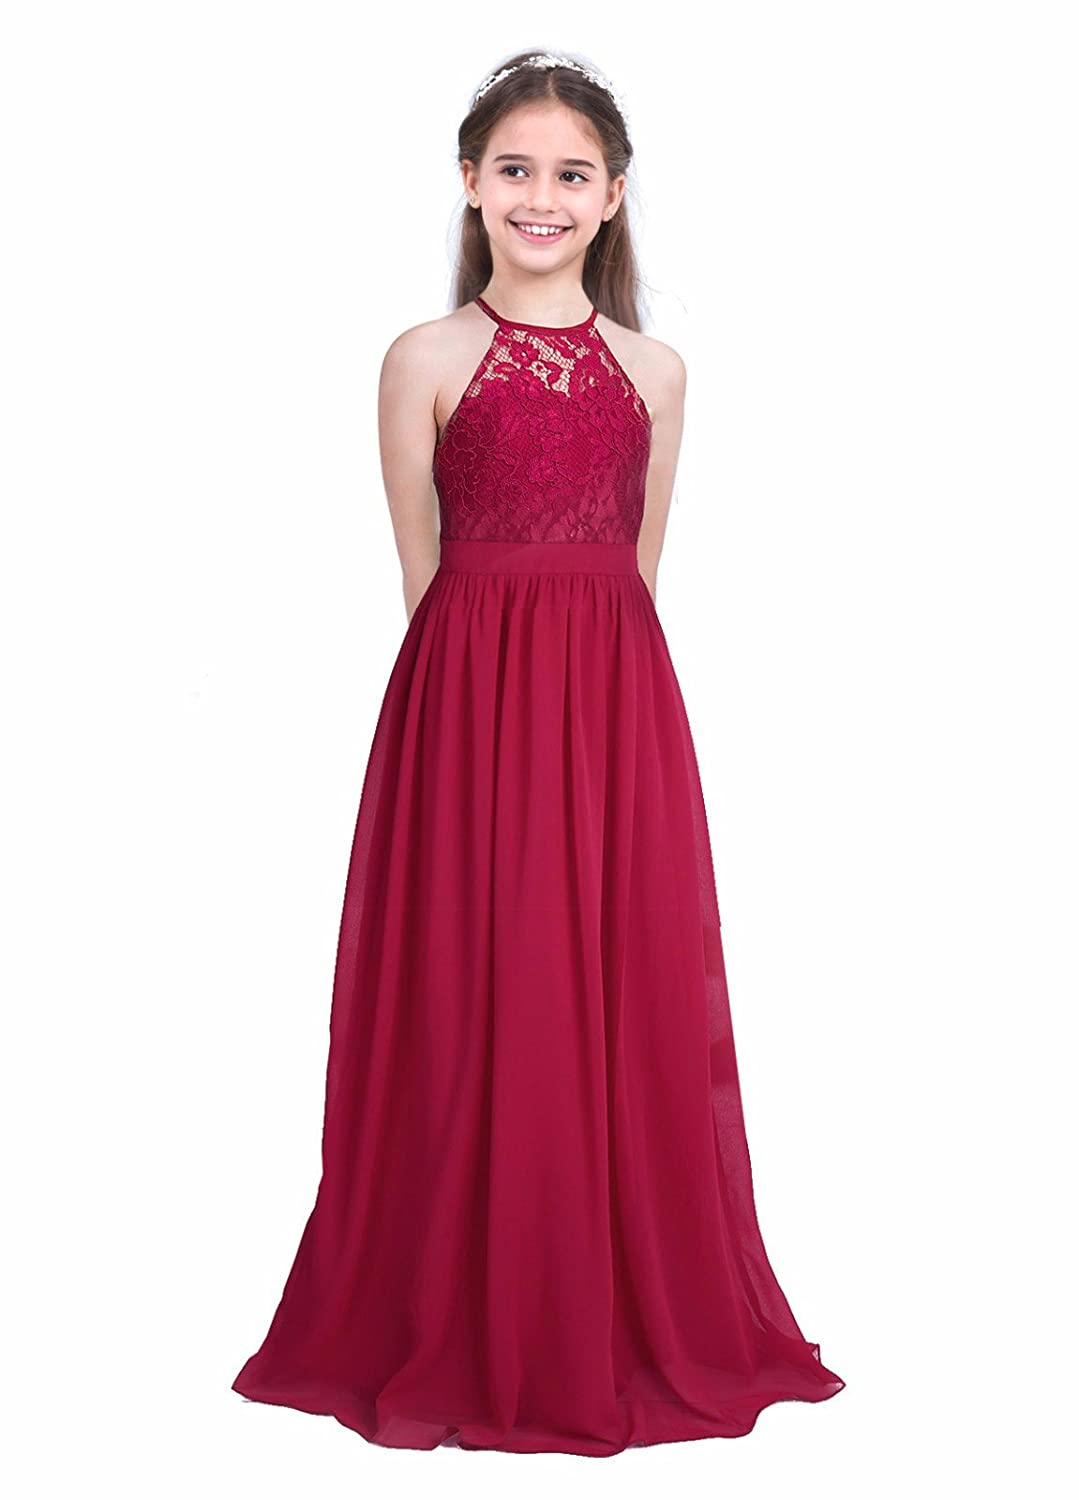 Amazon.com: FEESHOW Big Girls Halter-Neck Floral Lace Junior Bridesmaid Dress Party Wedding Long Gown: Clothing